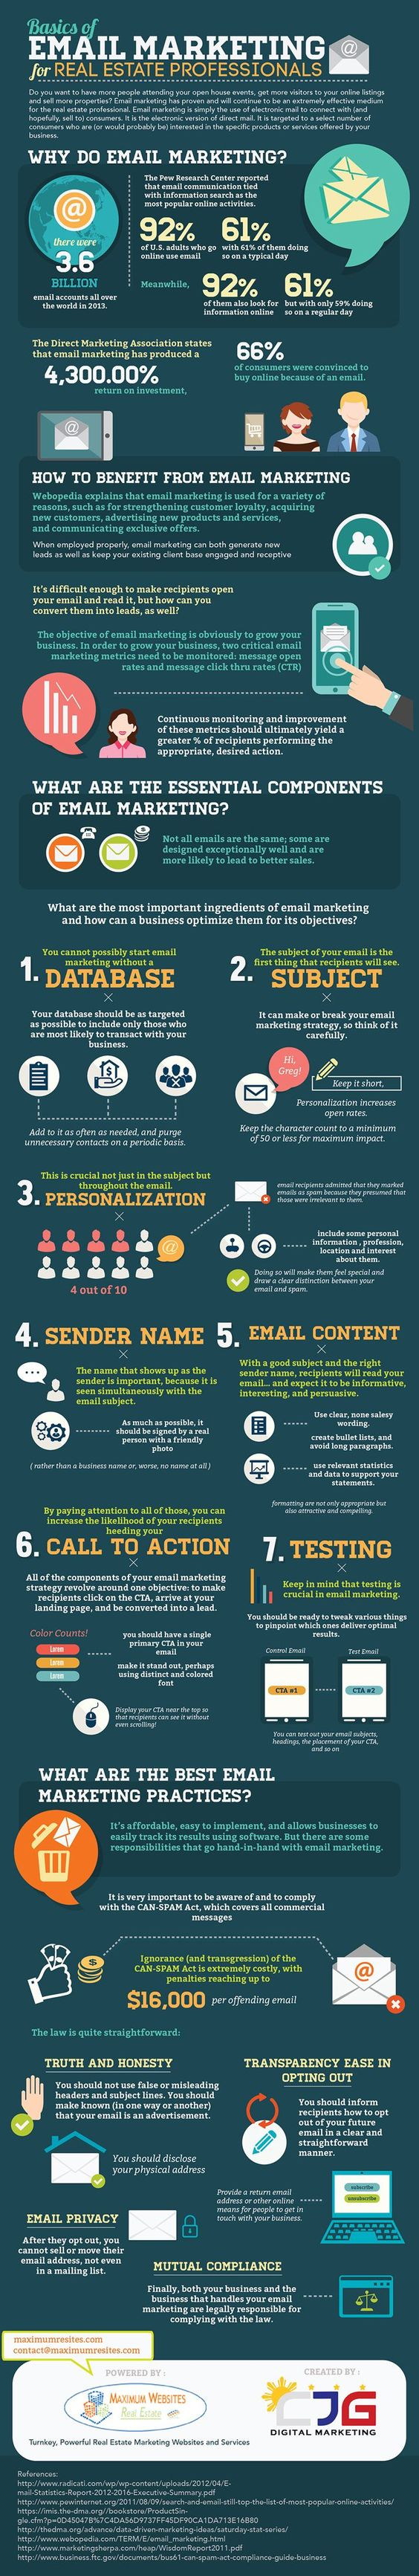 When employed properly, email marketing can both generate new leads as well as keep your existing client base engaged and receptive.